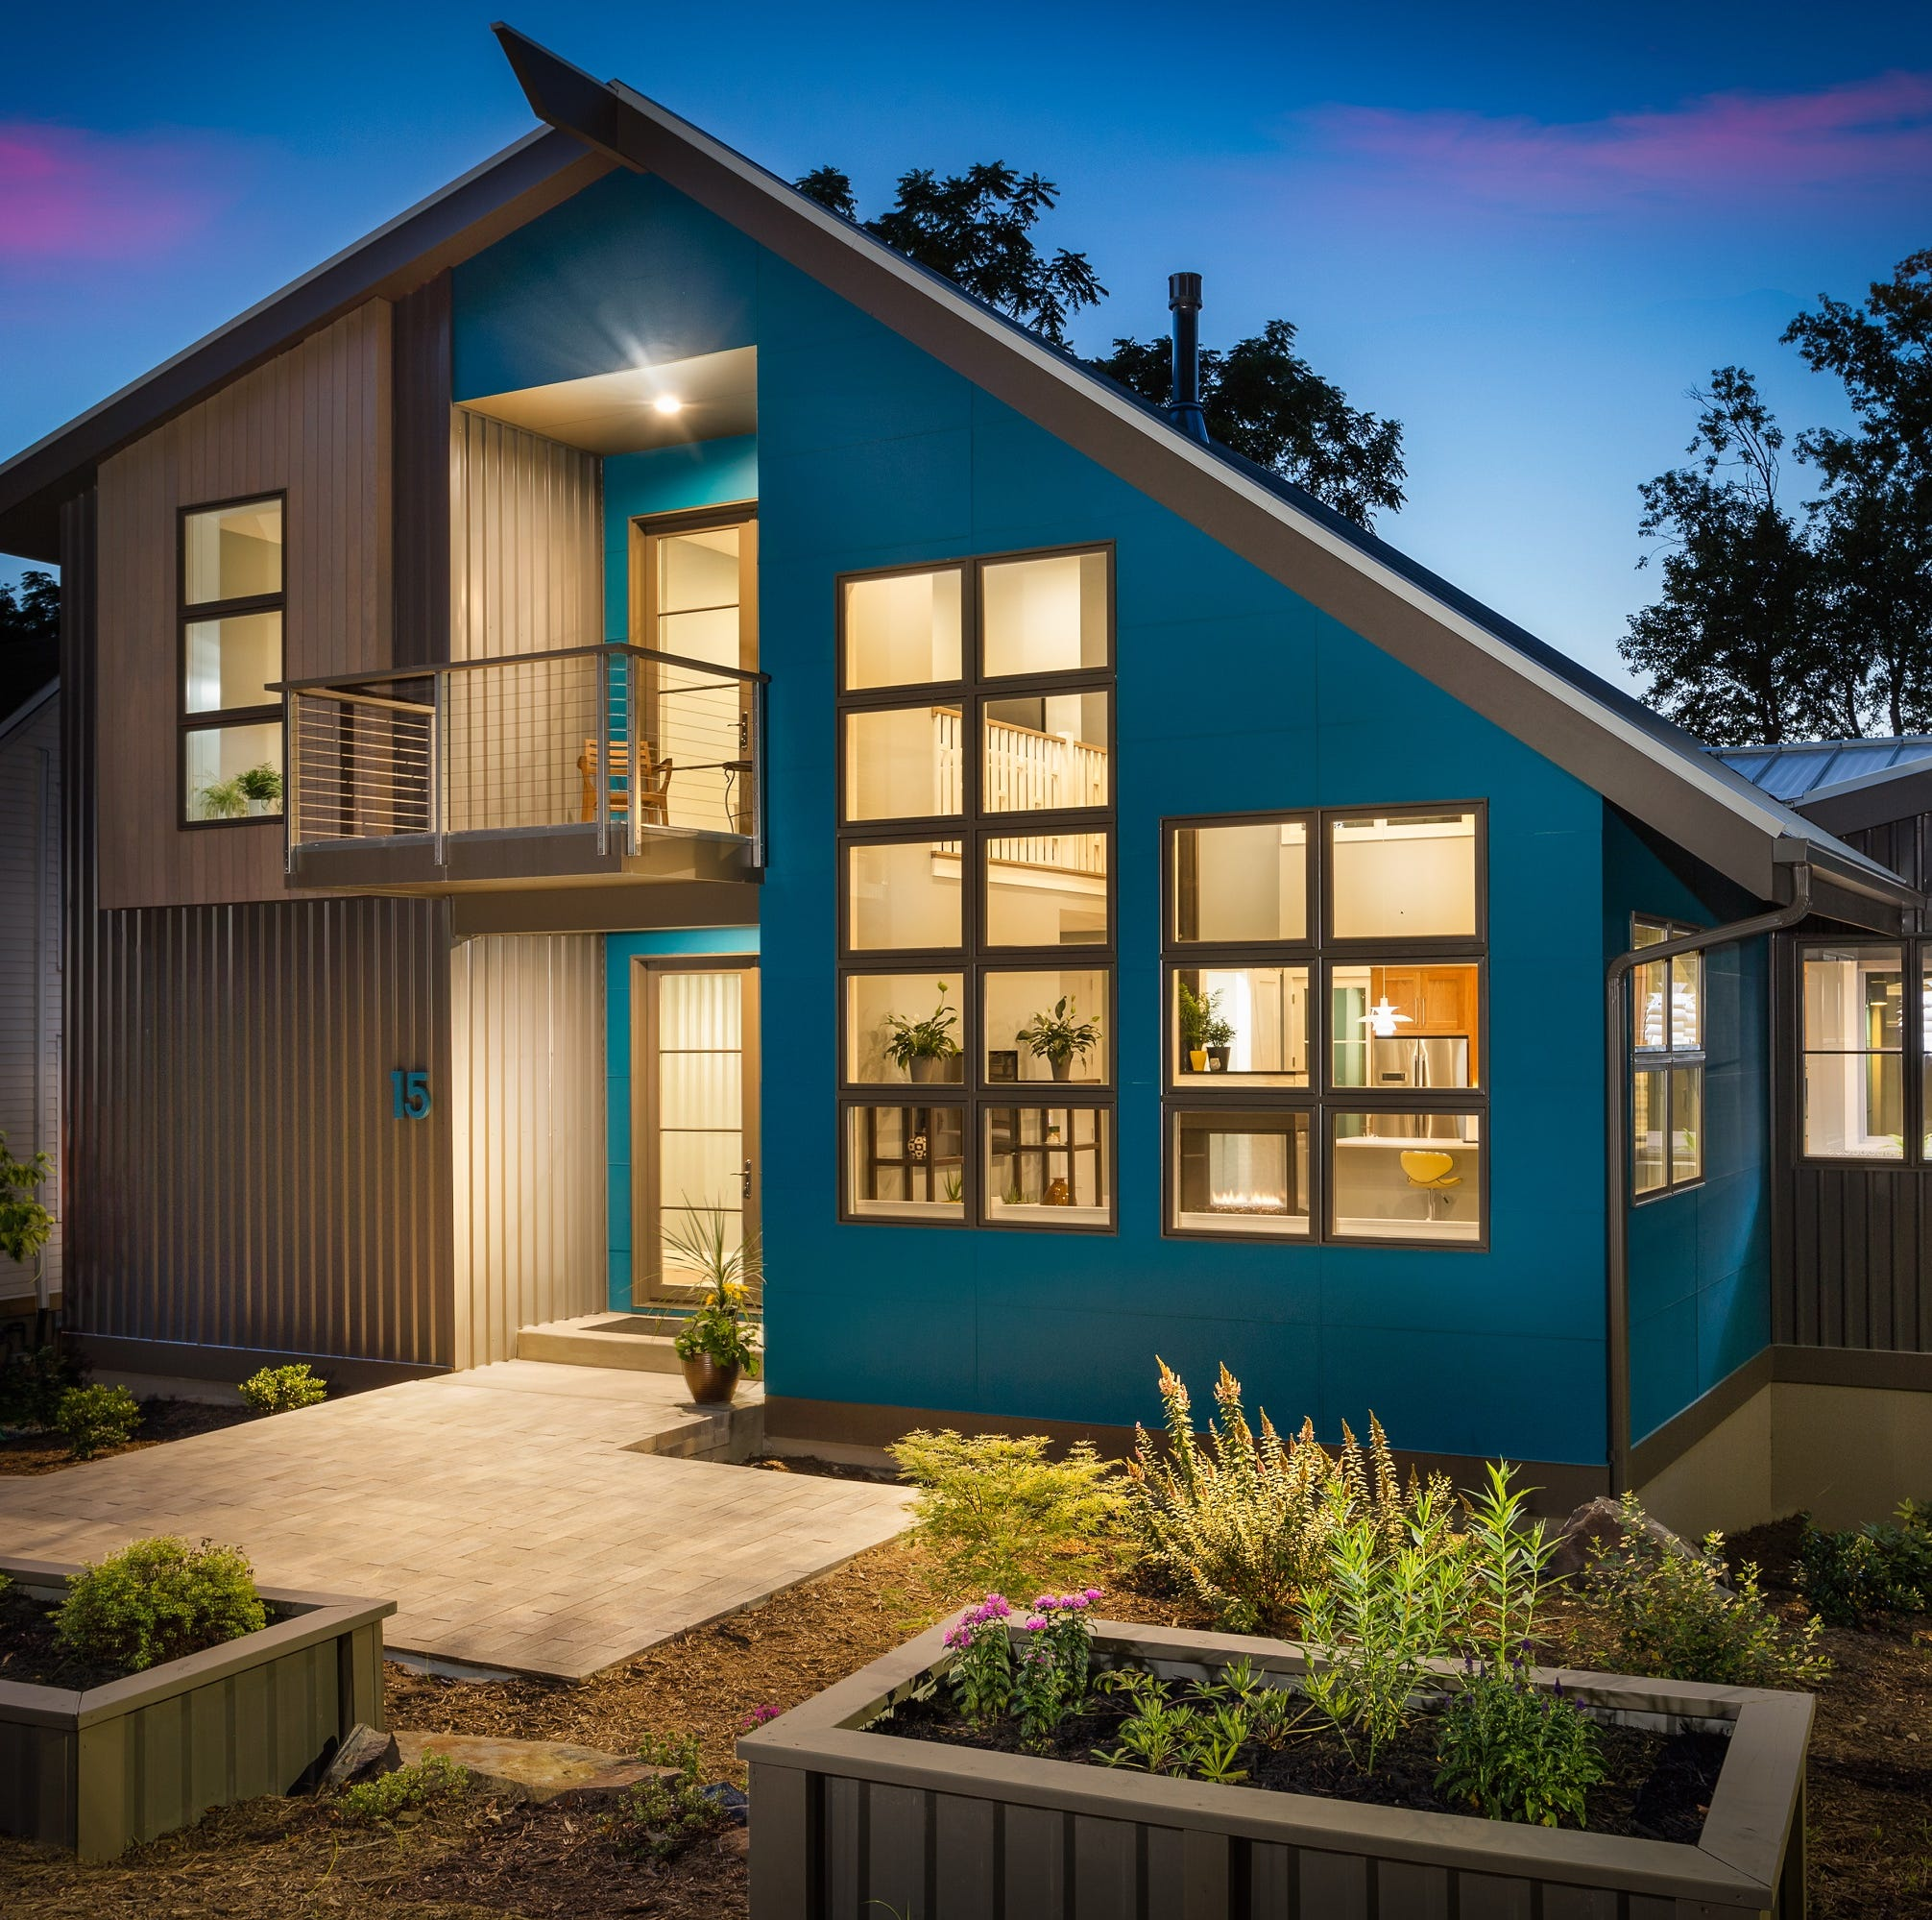 Certified green homes in North Carolina now number at least 1,500